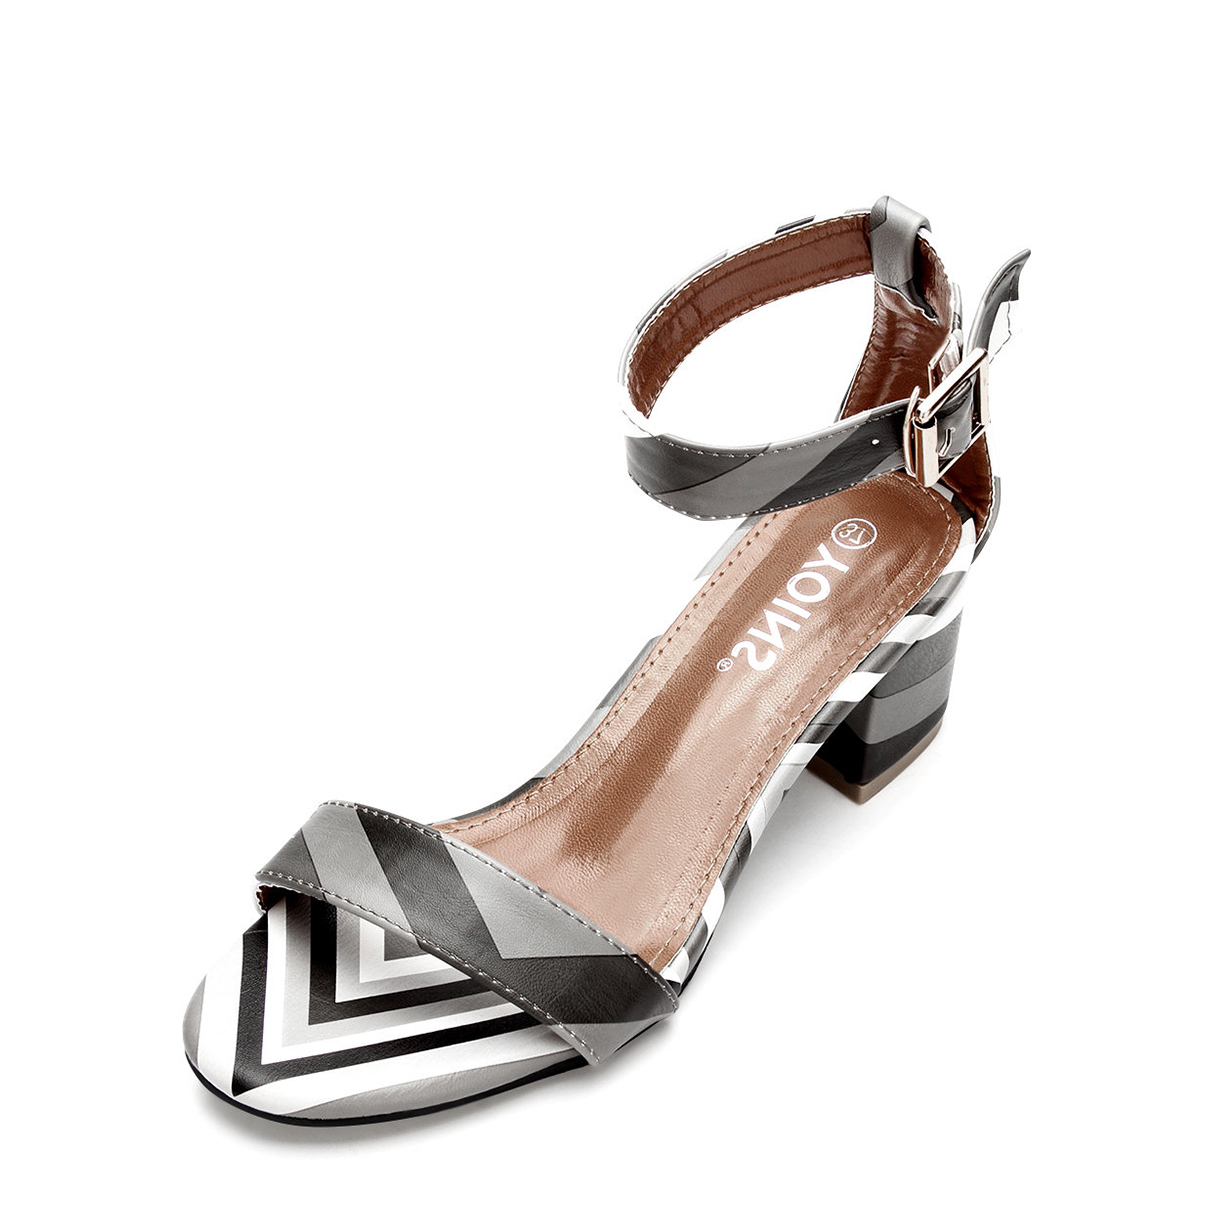 Contrast Color Block Fashion Heel Sandals With Single Strap Front